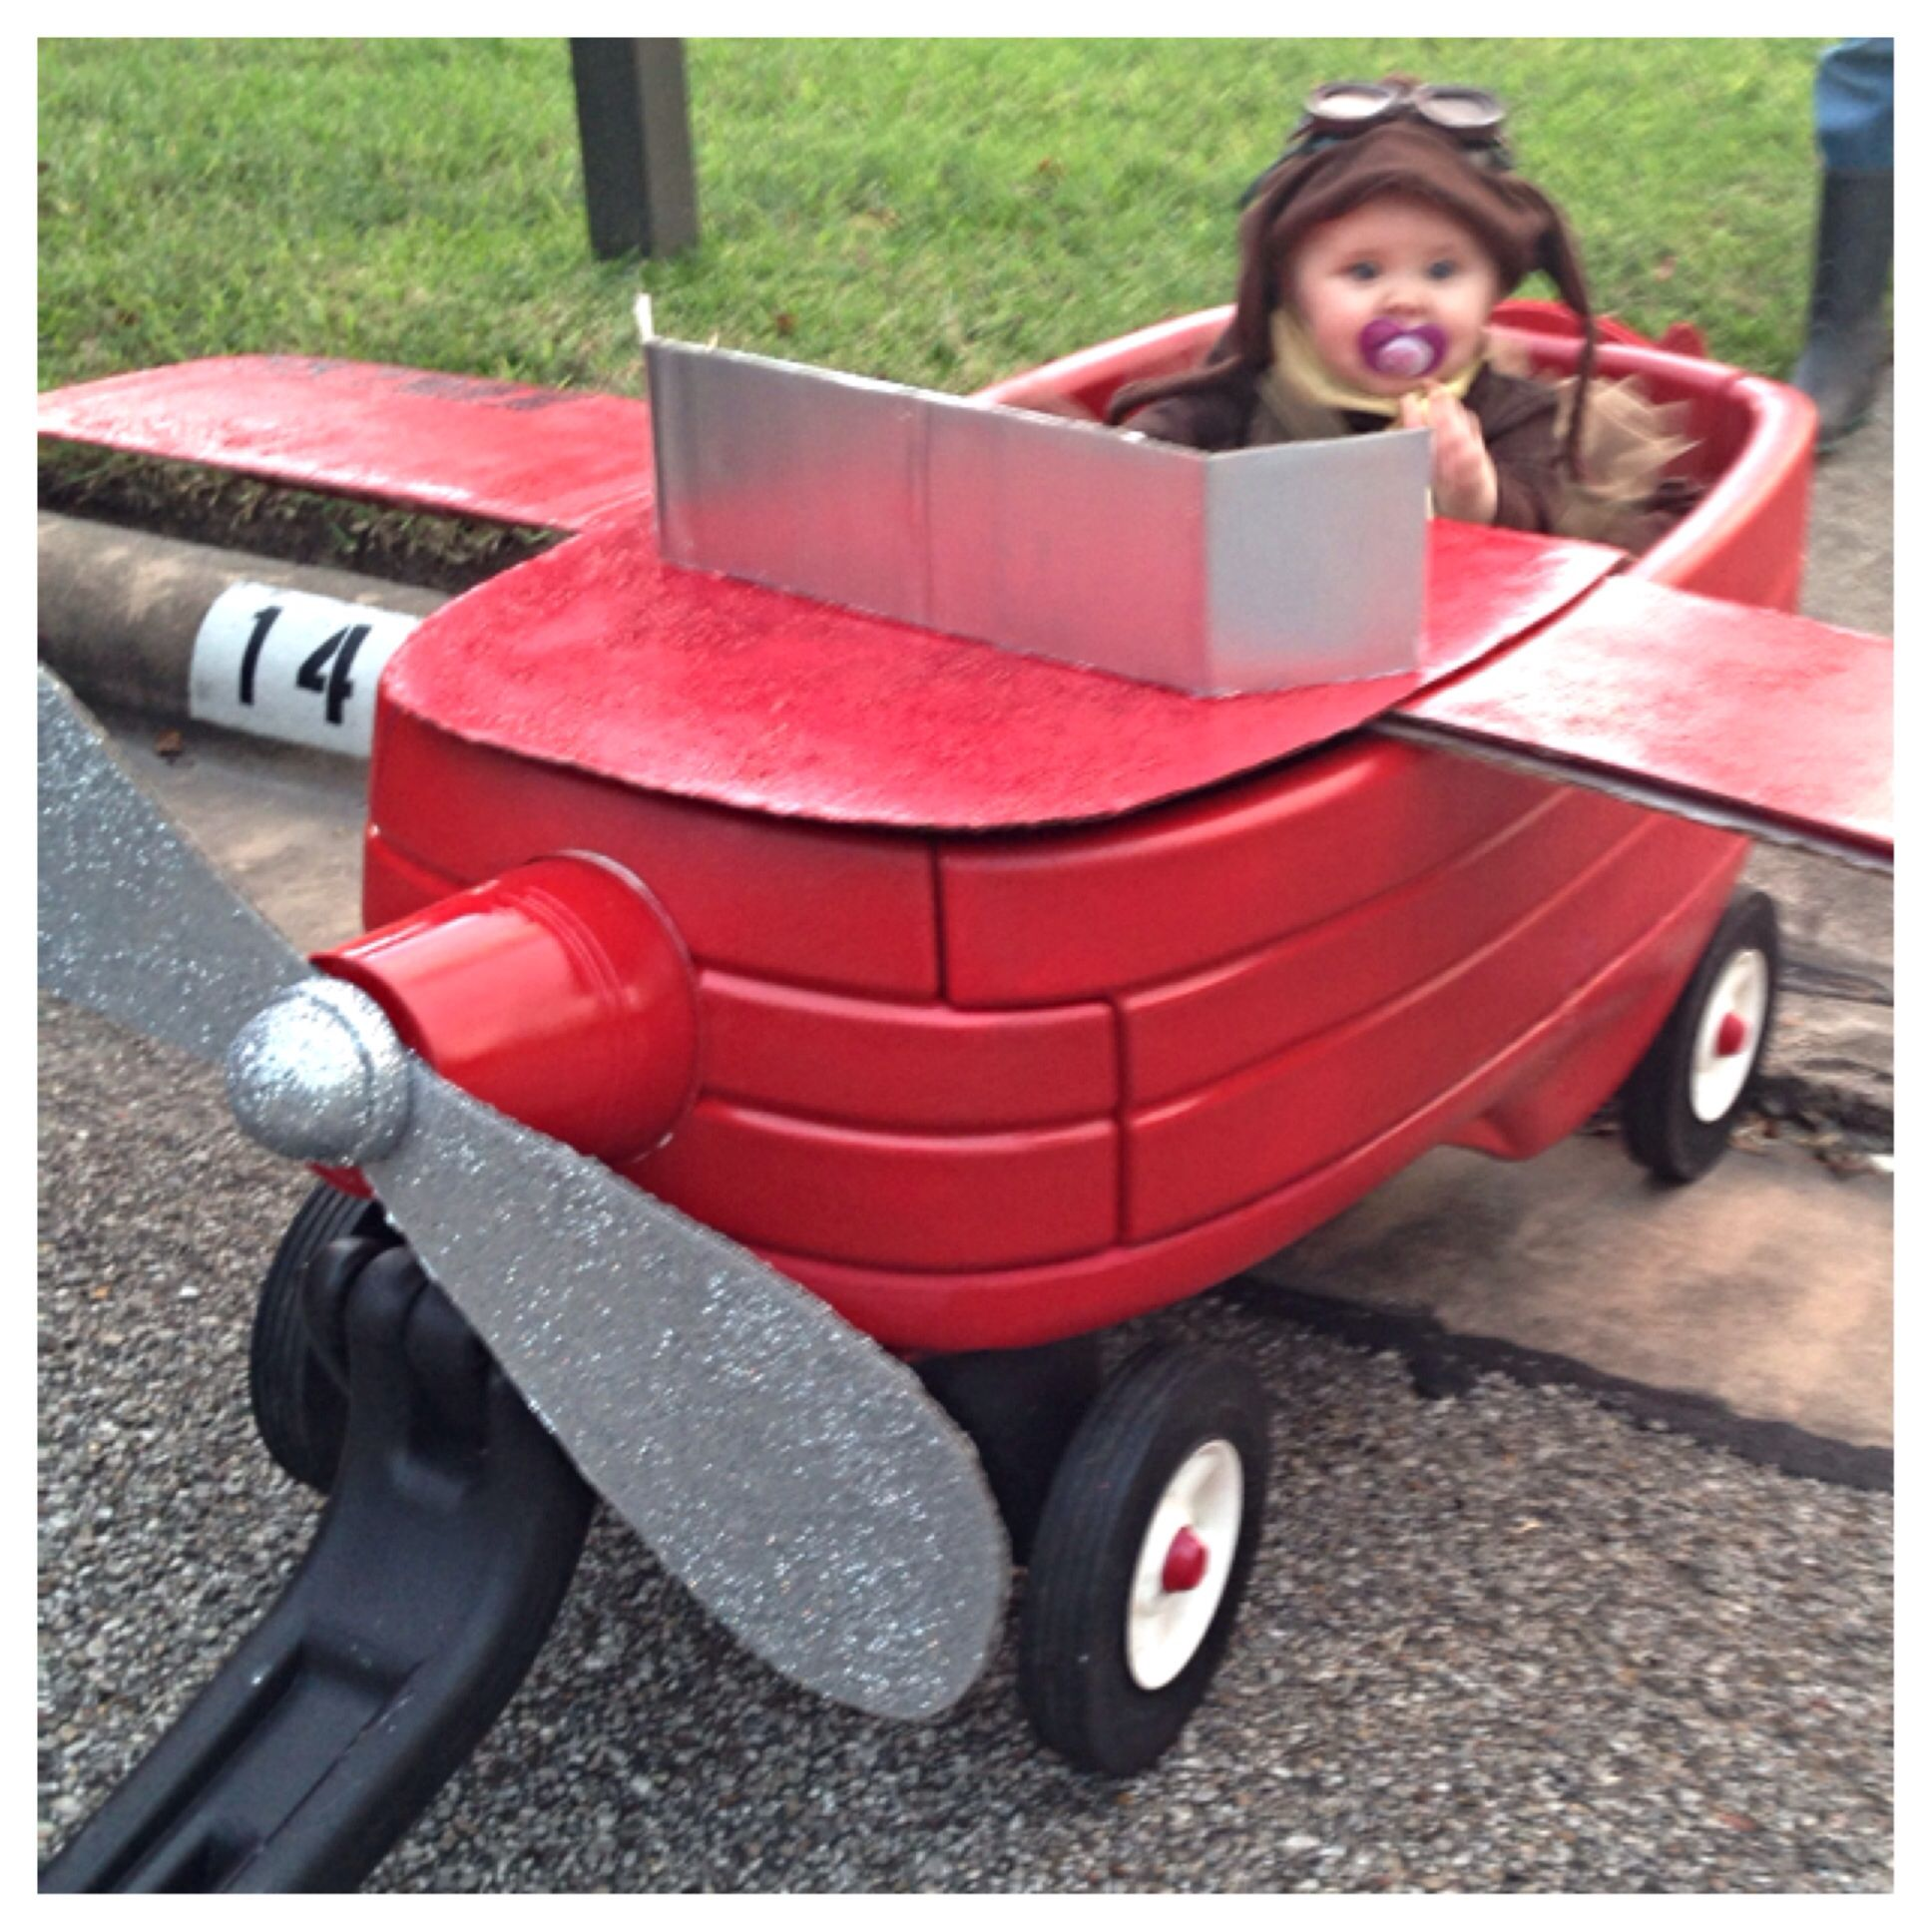 Turn your wagon into an awesome DIY fire truck for your little ...